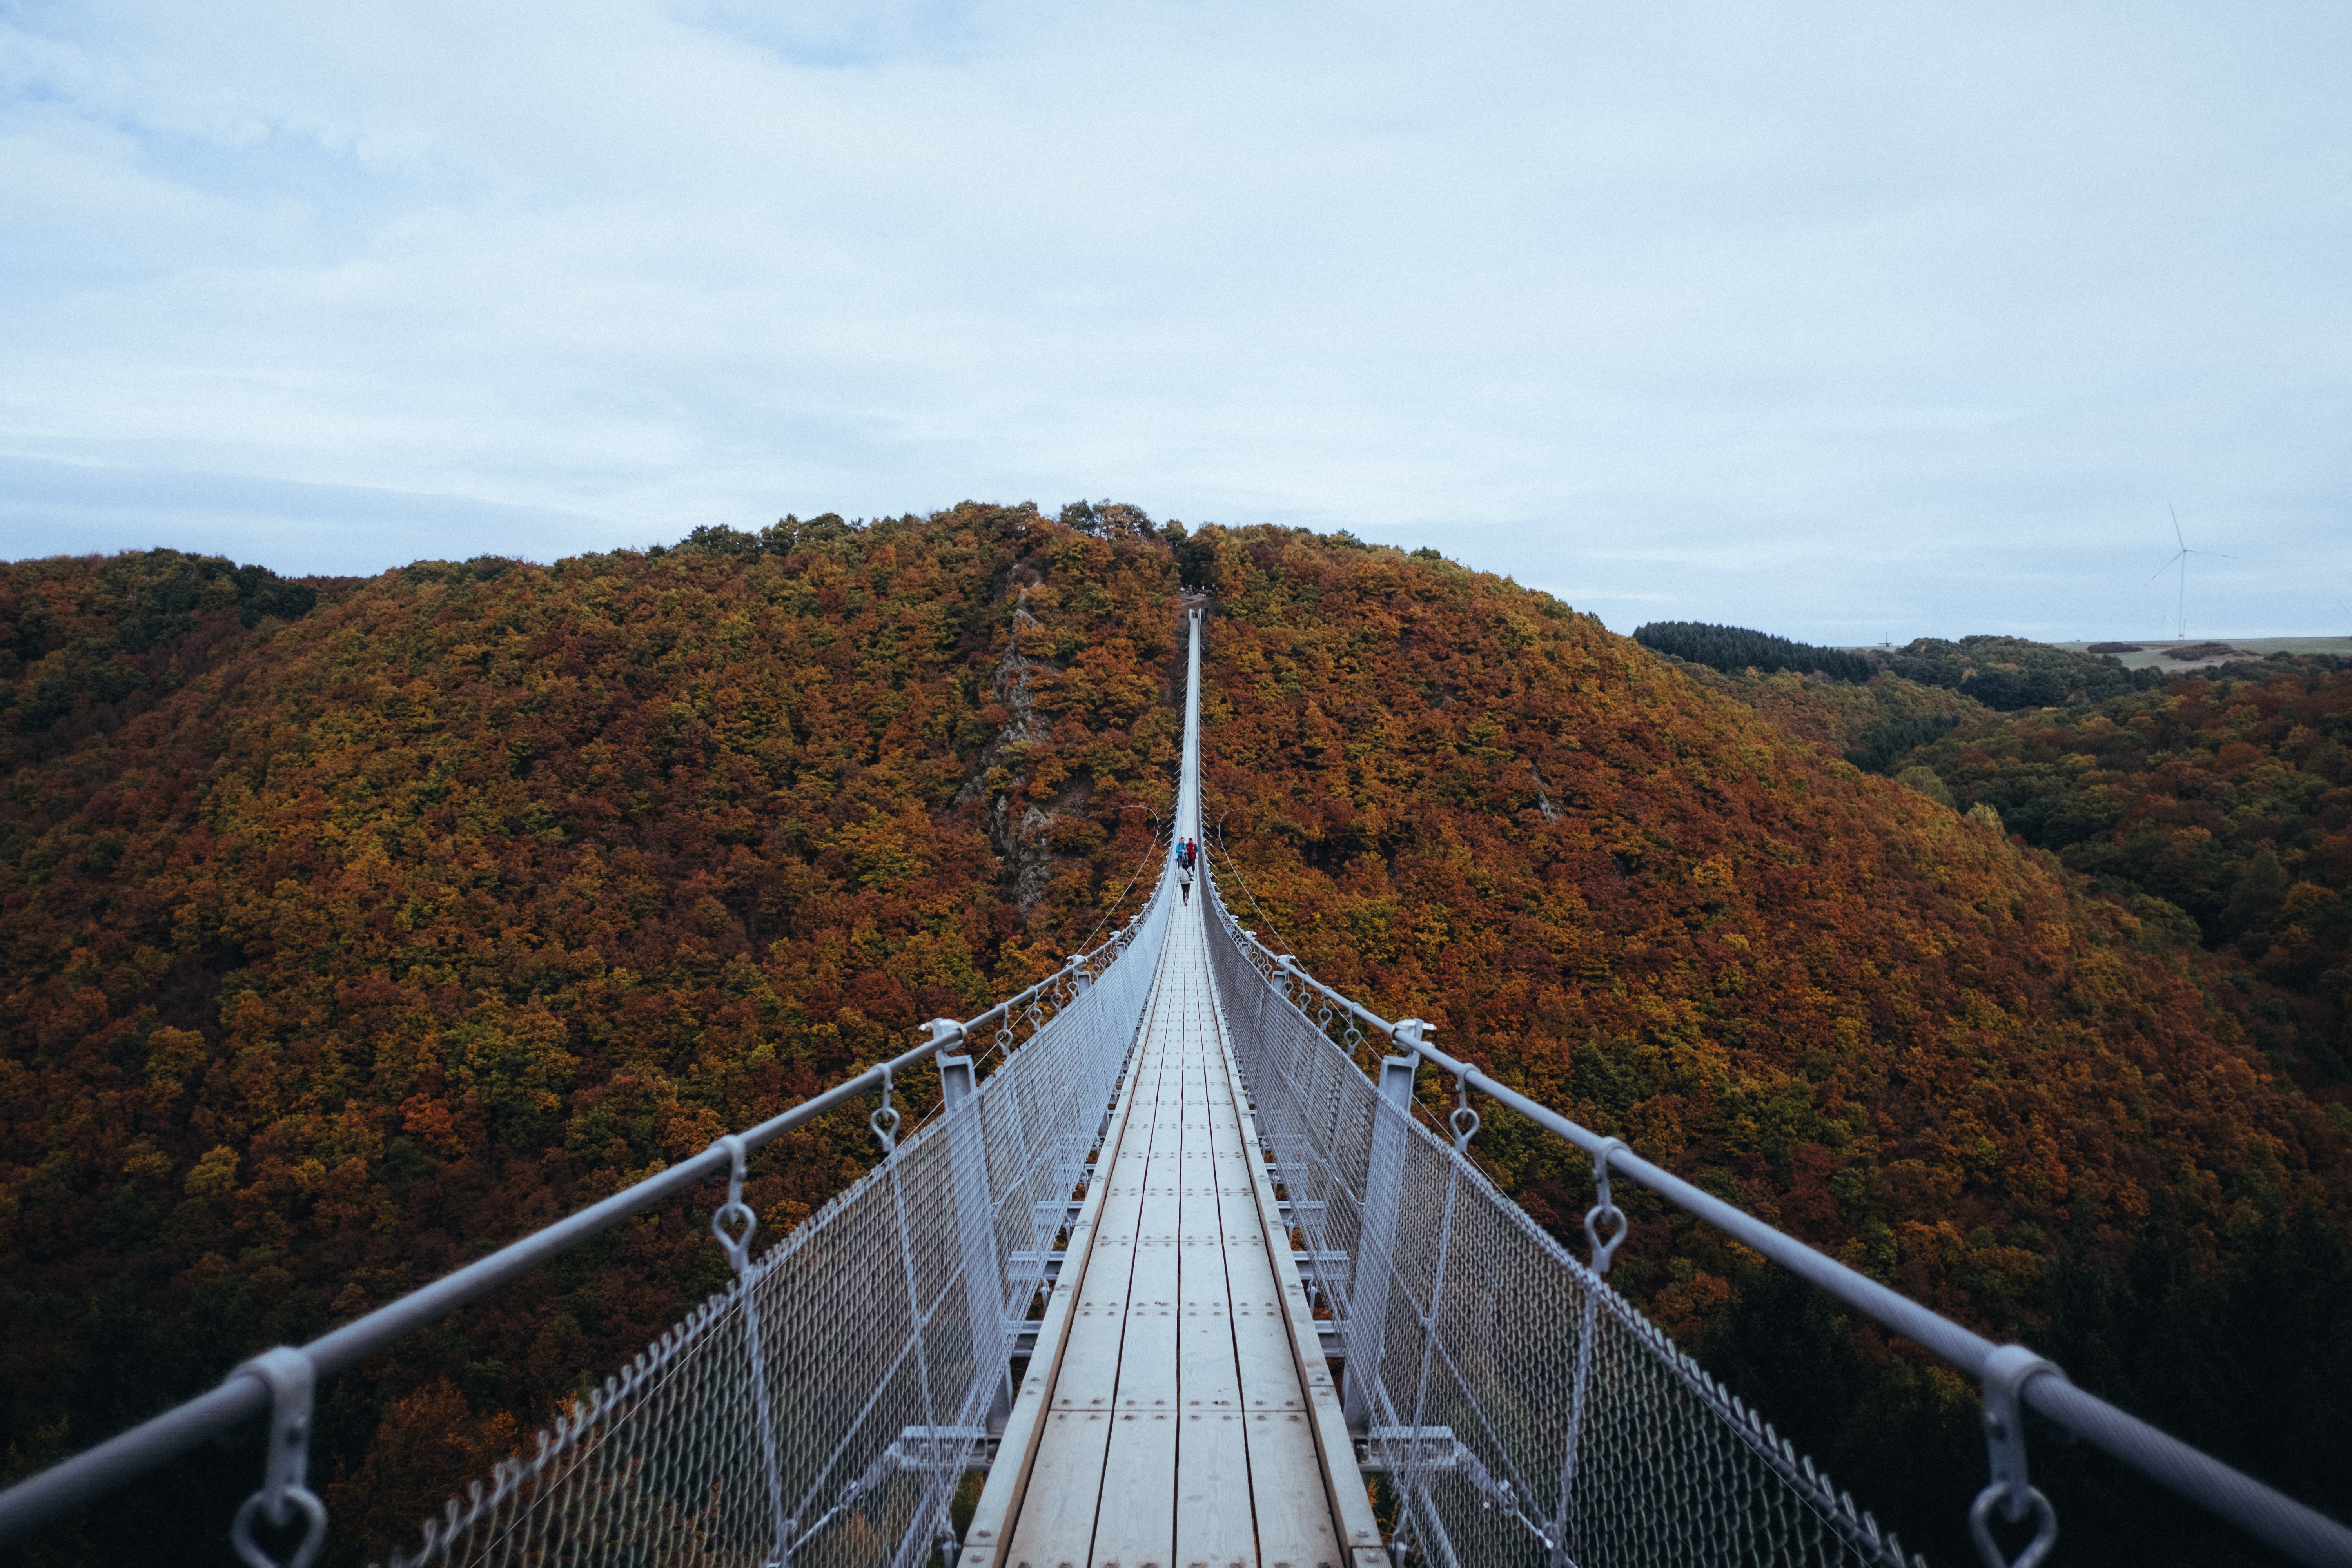 A long view of a suspension bridge in Geierlay